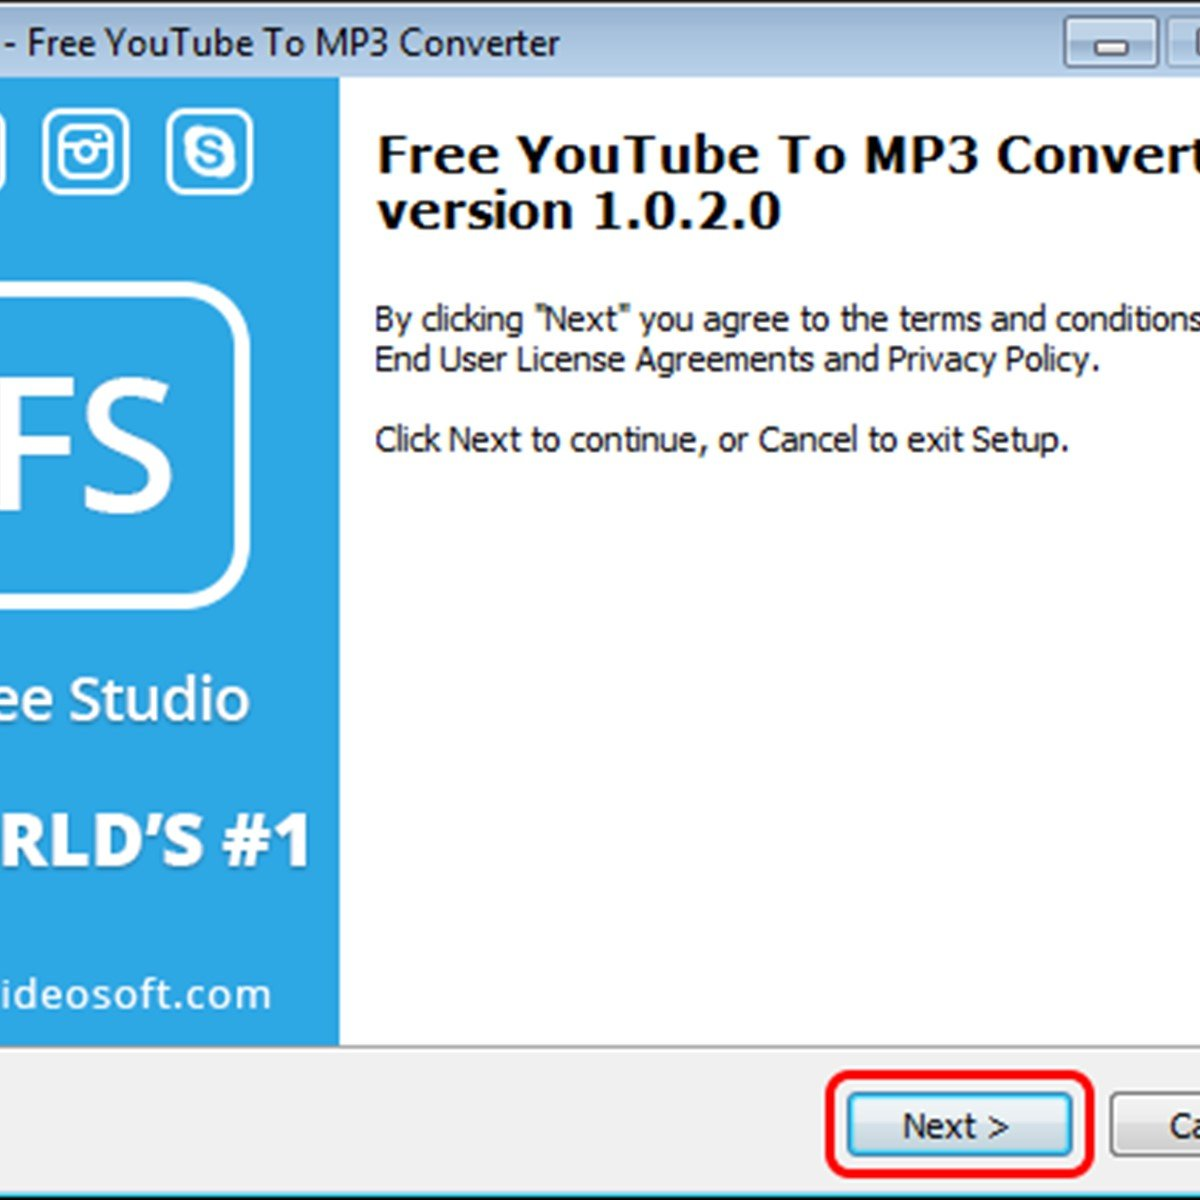 Free YouTube to MP3 Converter Reviews, Features, and